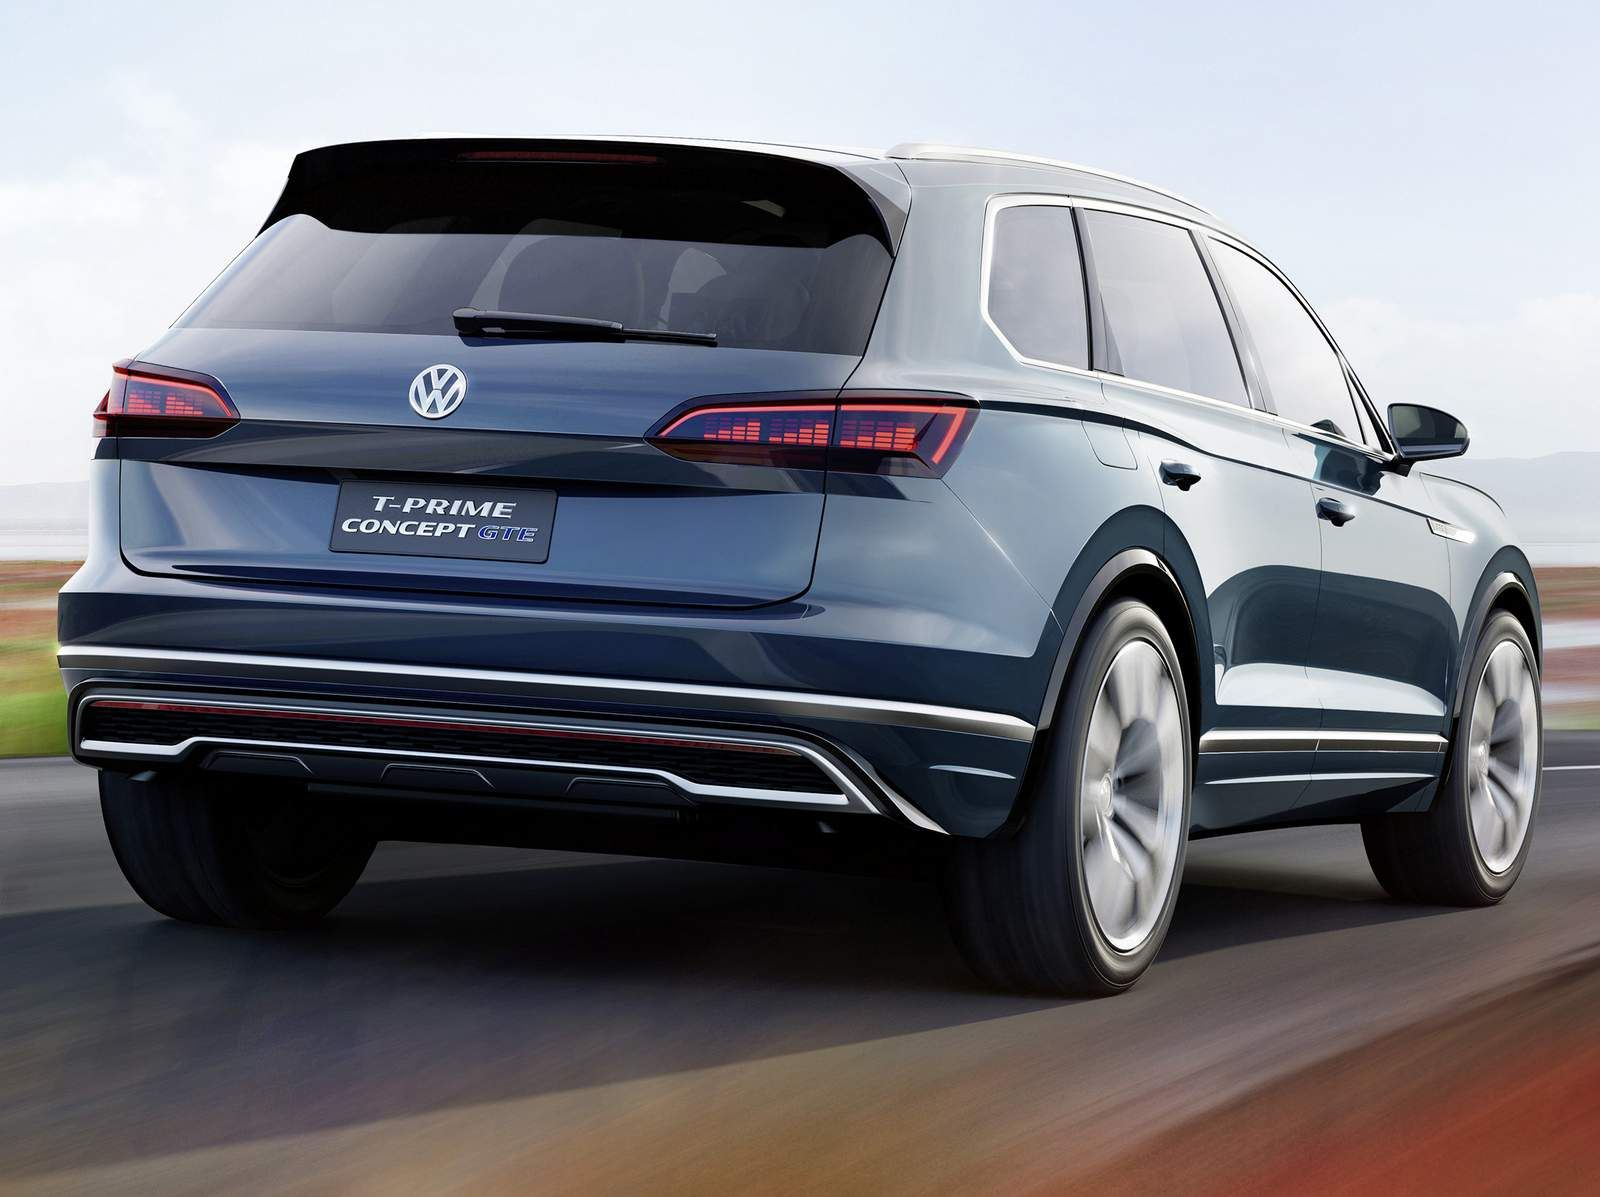 Vw Touareg 2017 4x4 Pinterest Volkswagen Concept Cars And Cars